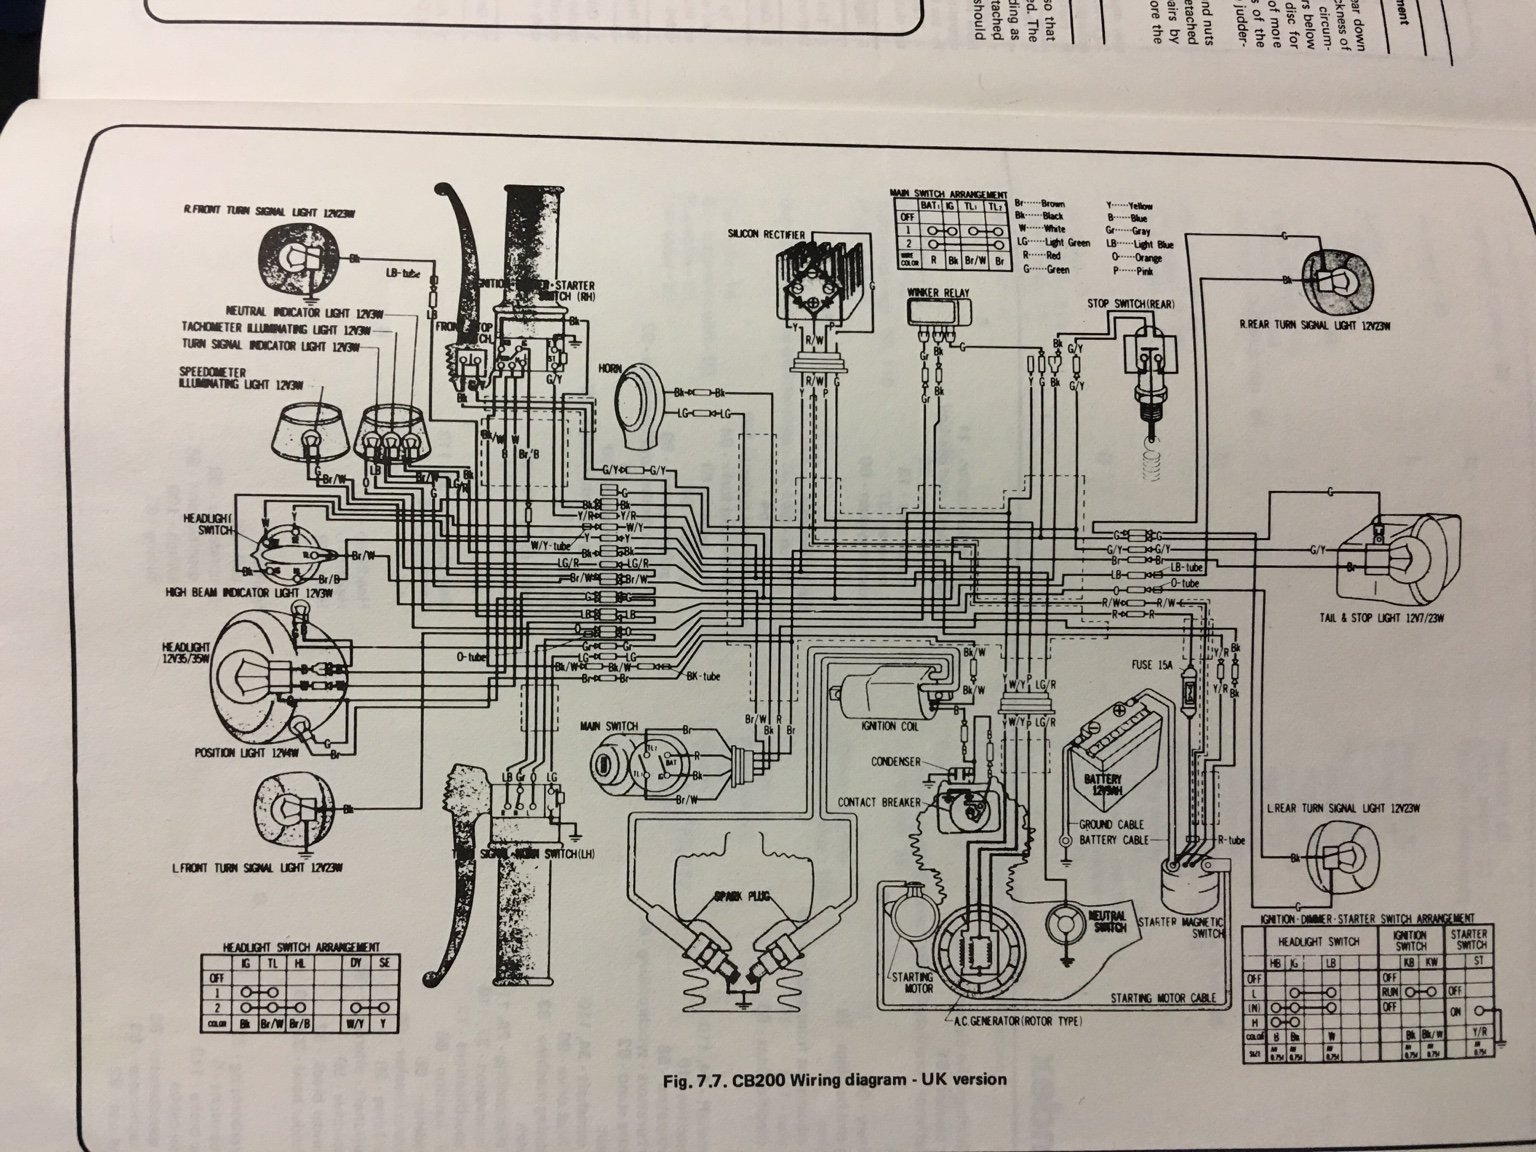 hight resolution of honda lead wiring diagram